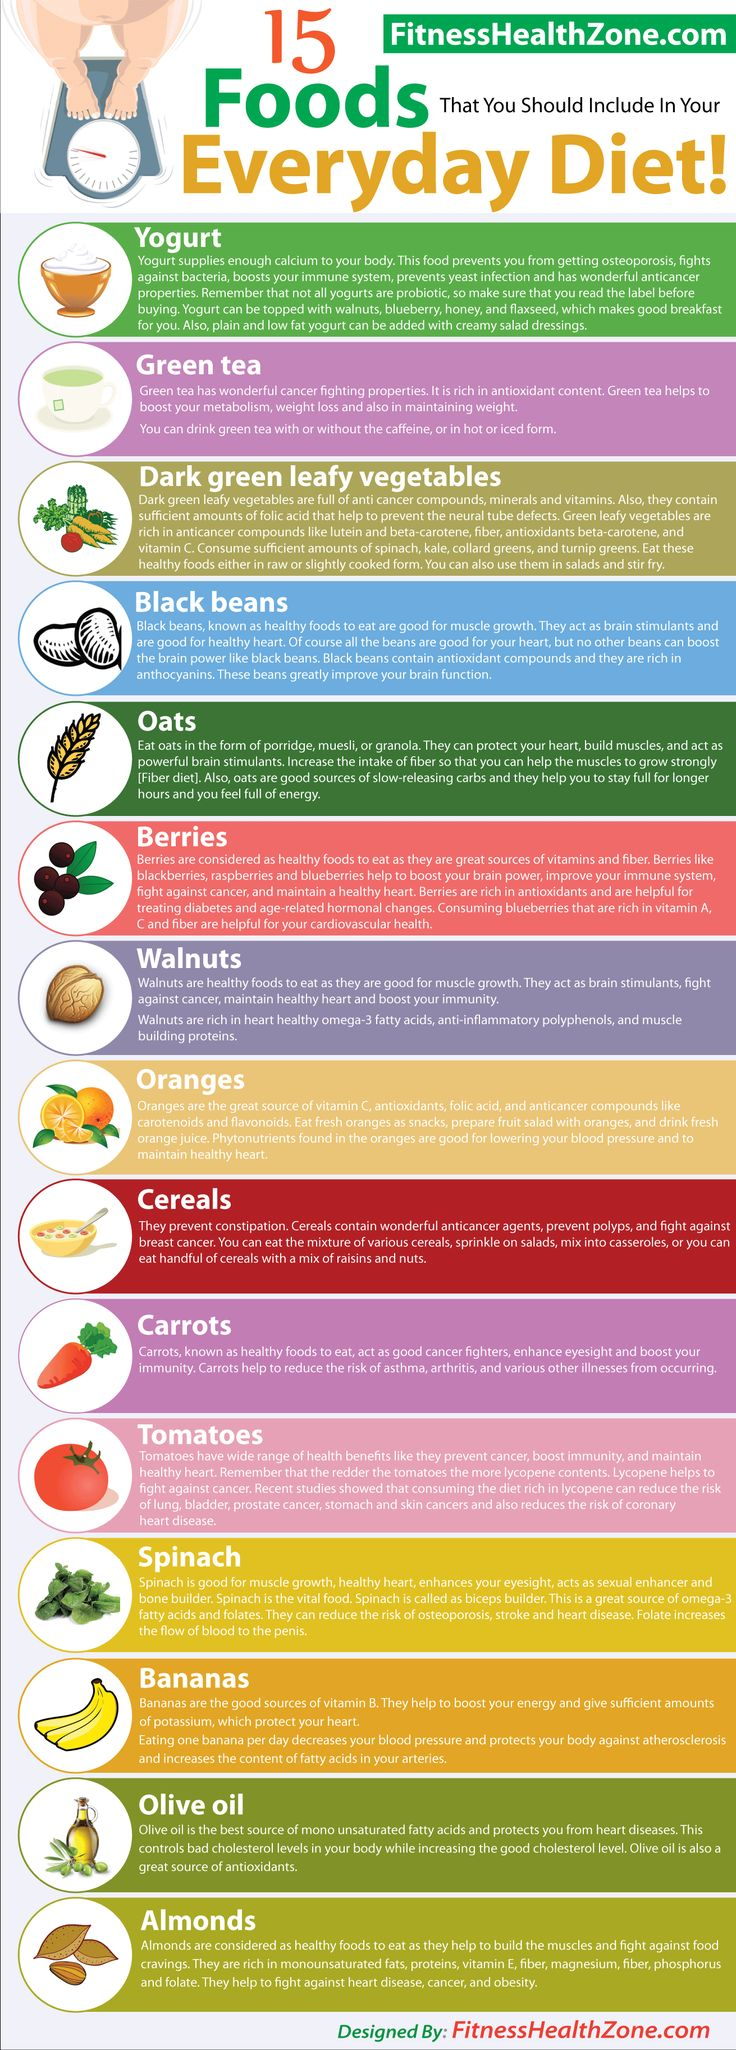 Viance Nutrition | 15 Foods That You Should Include In Your Everyday Diet! | www.viance.com | #viancenutrition #viance #healthyliving #weight #weightloss